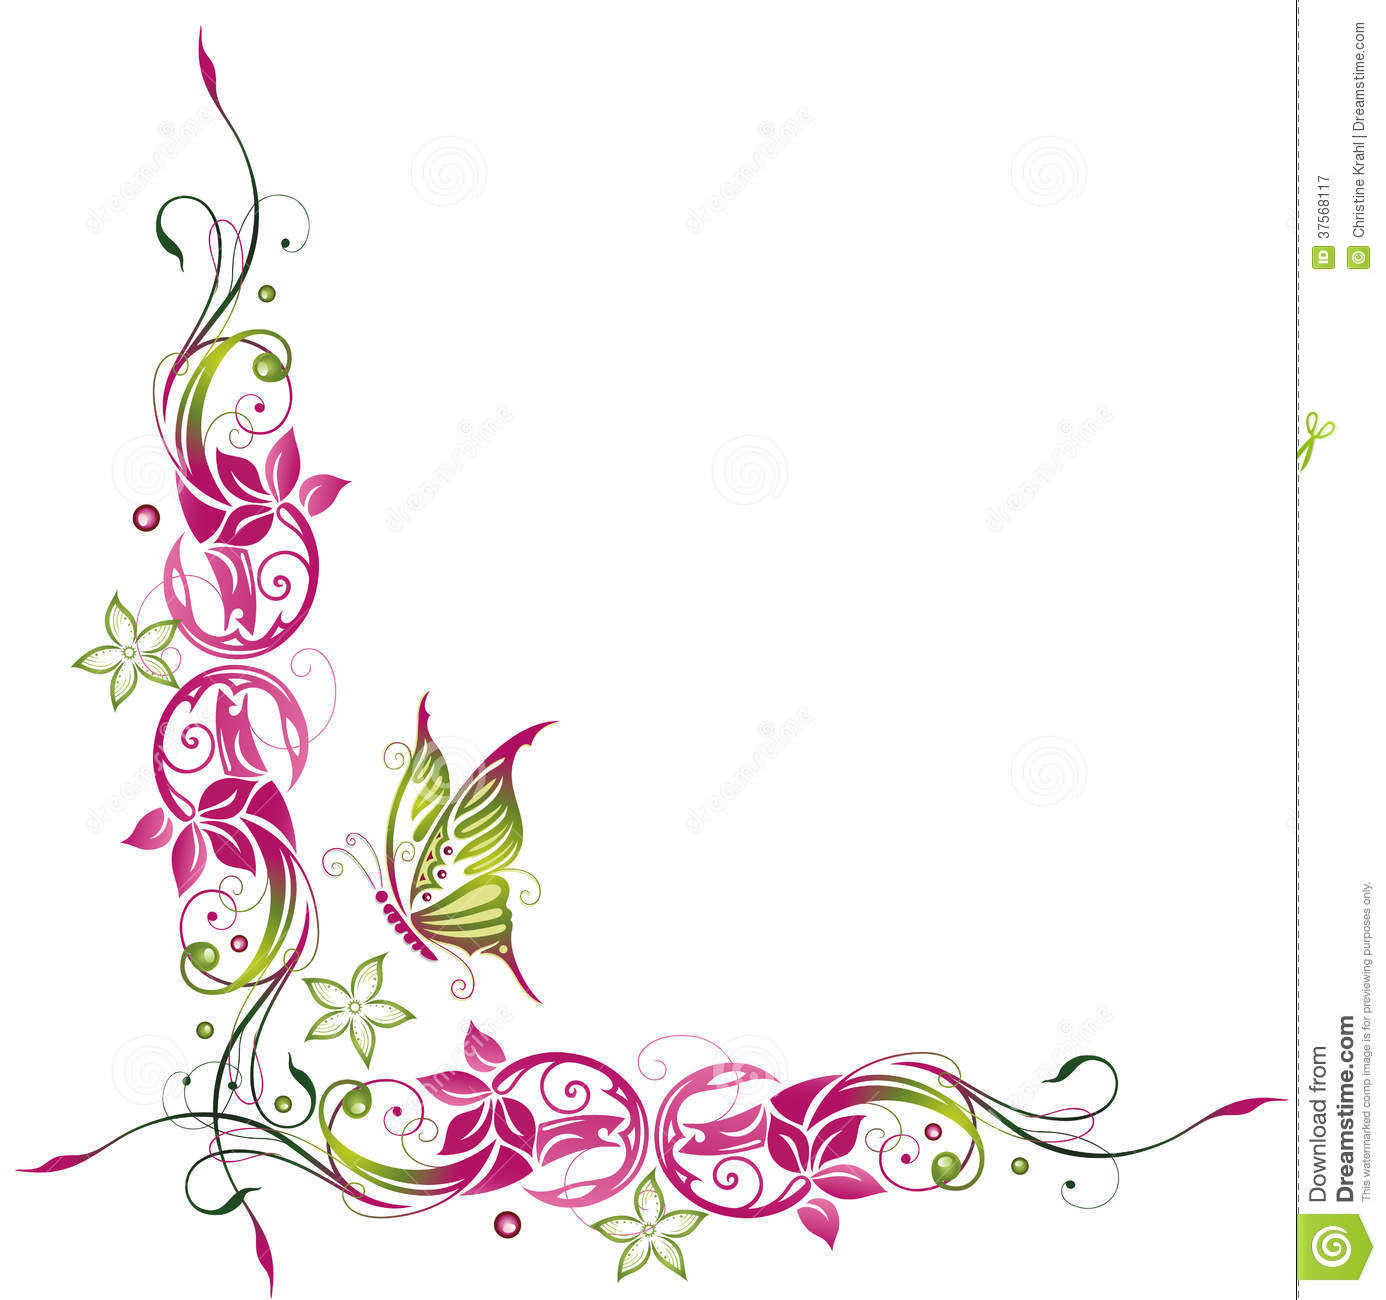 Flower and butterfly border clip art - photo#2